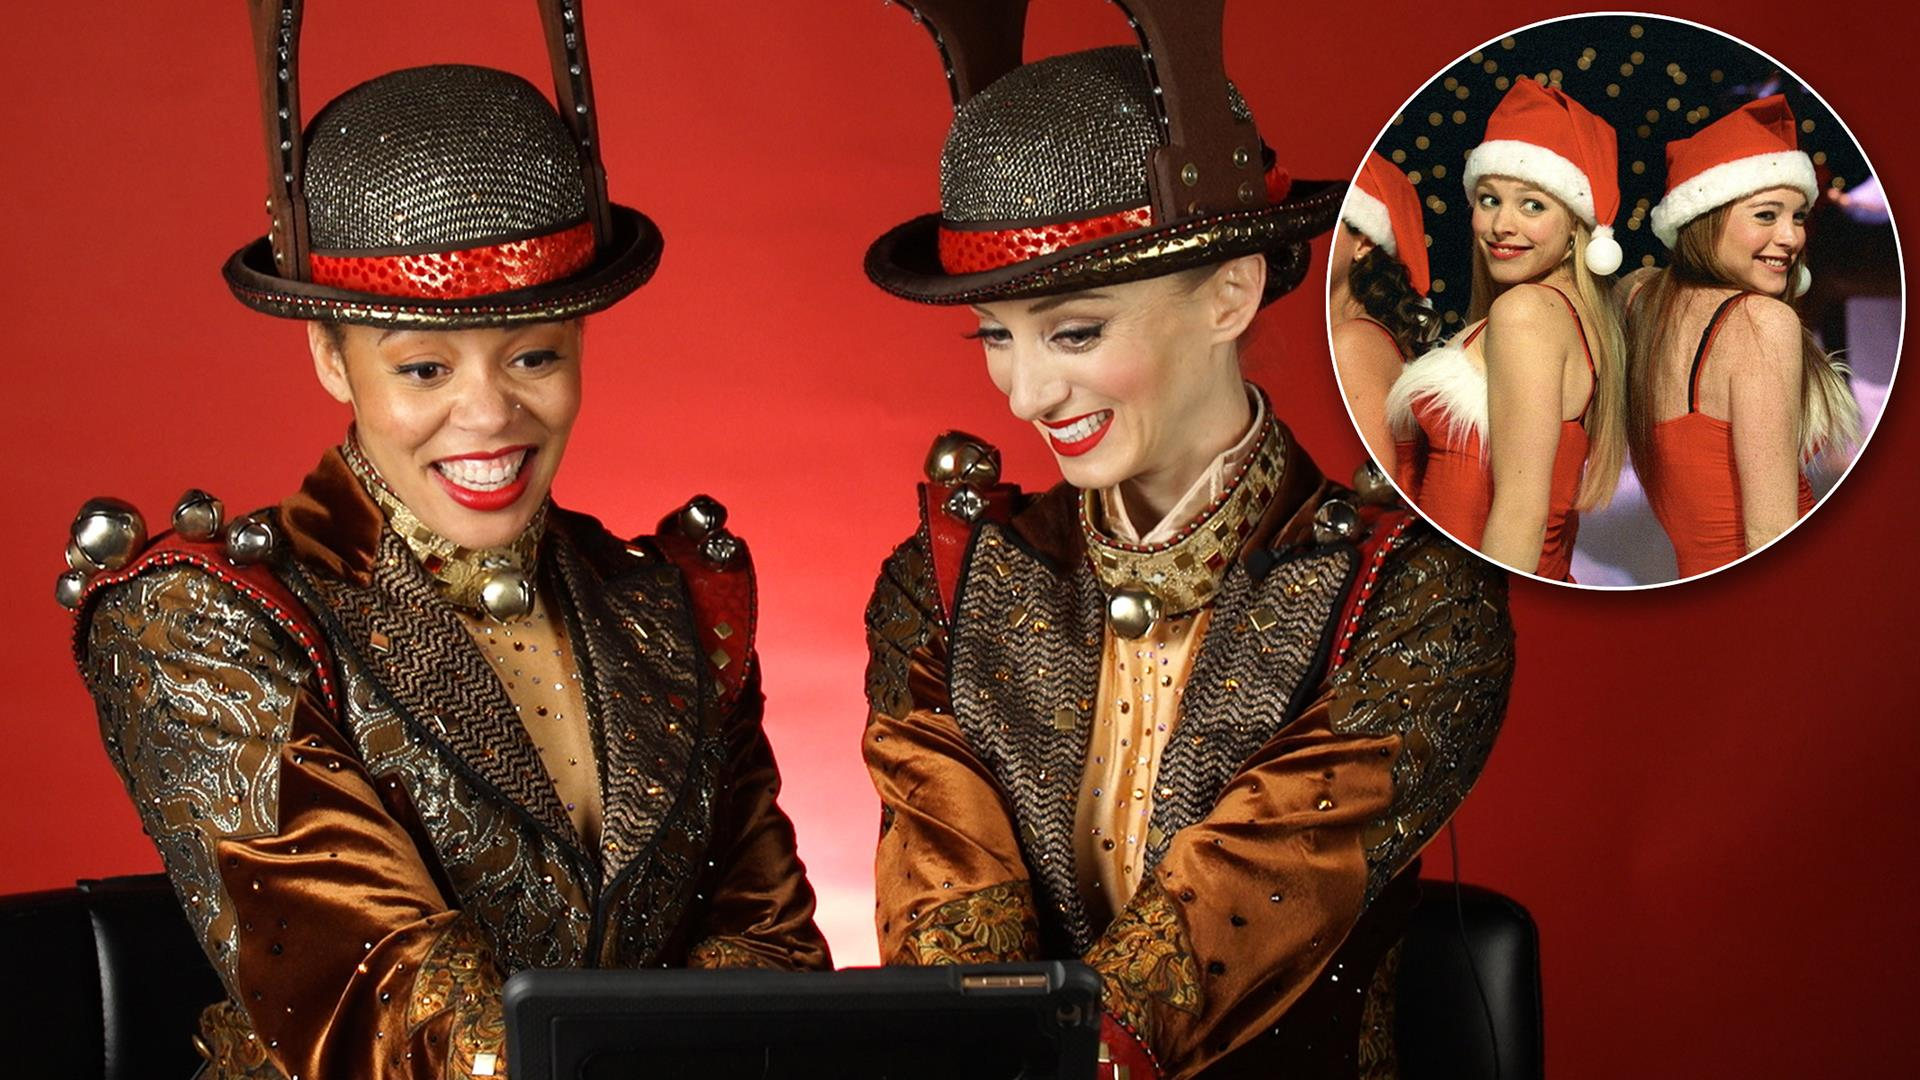 Rockettes react to 6 Christmas movie dance scenes